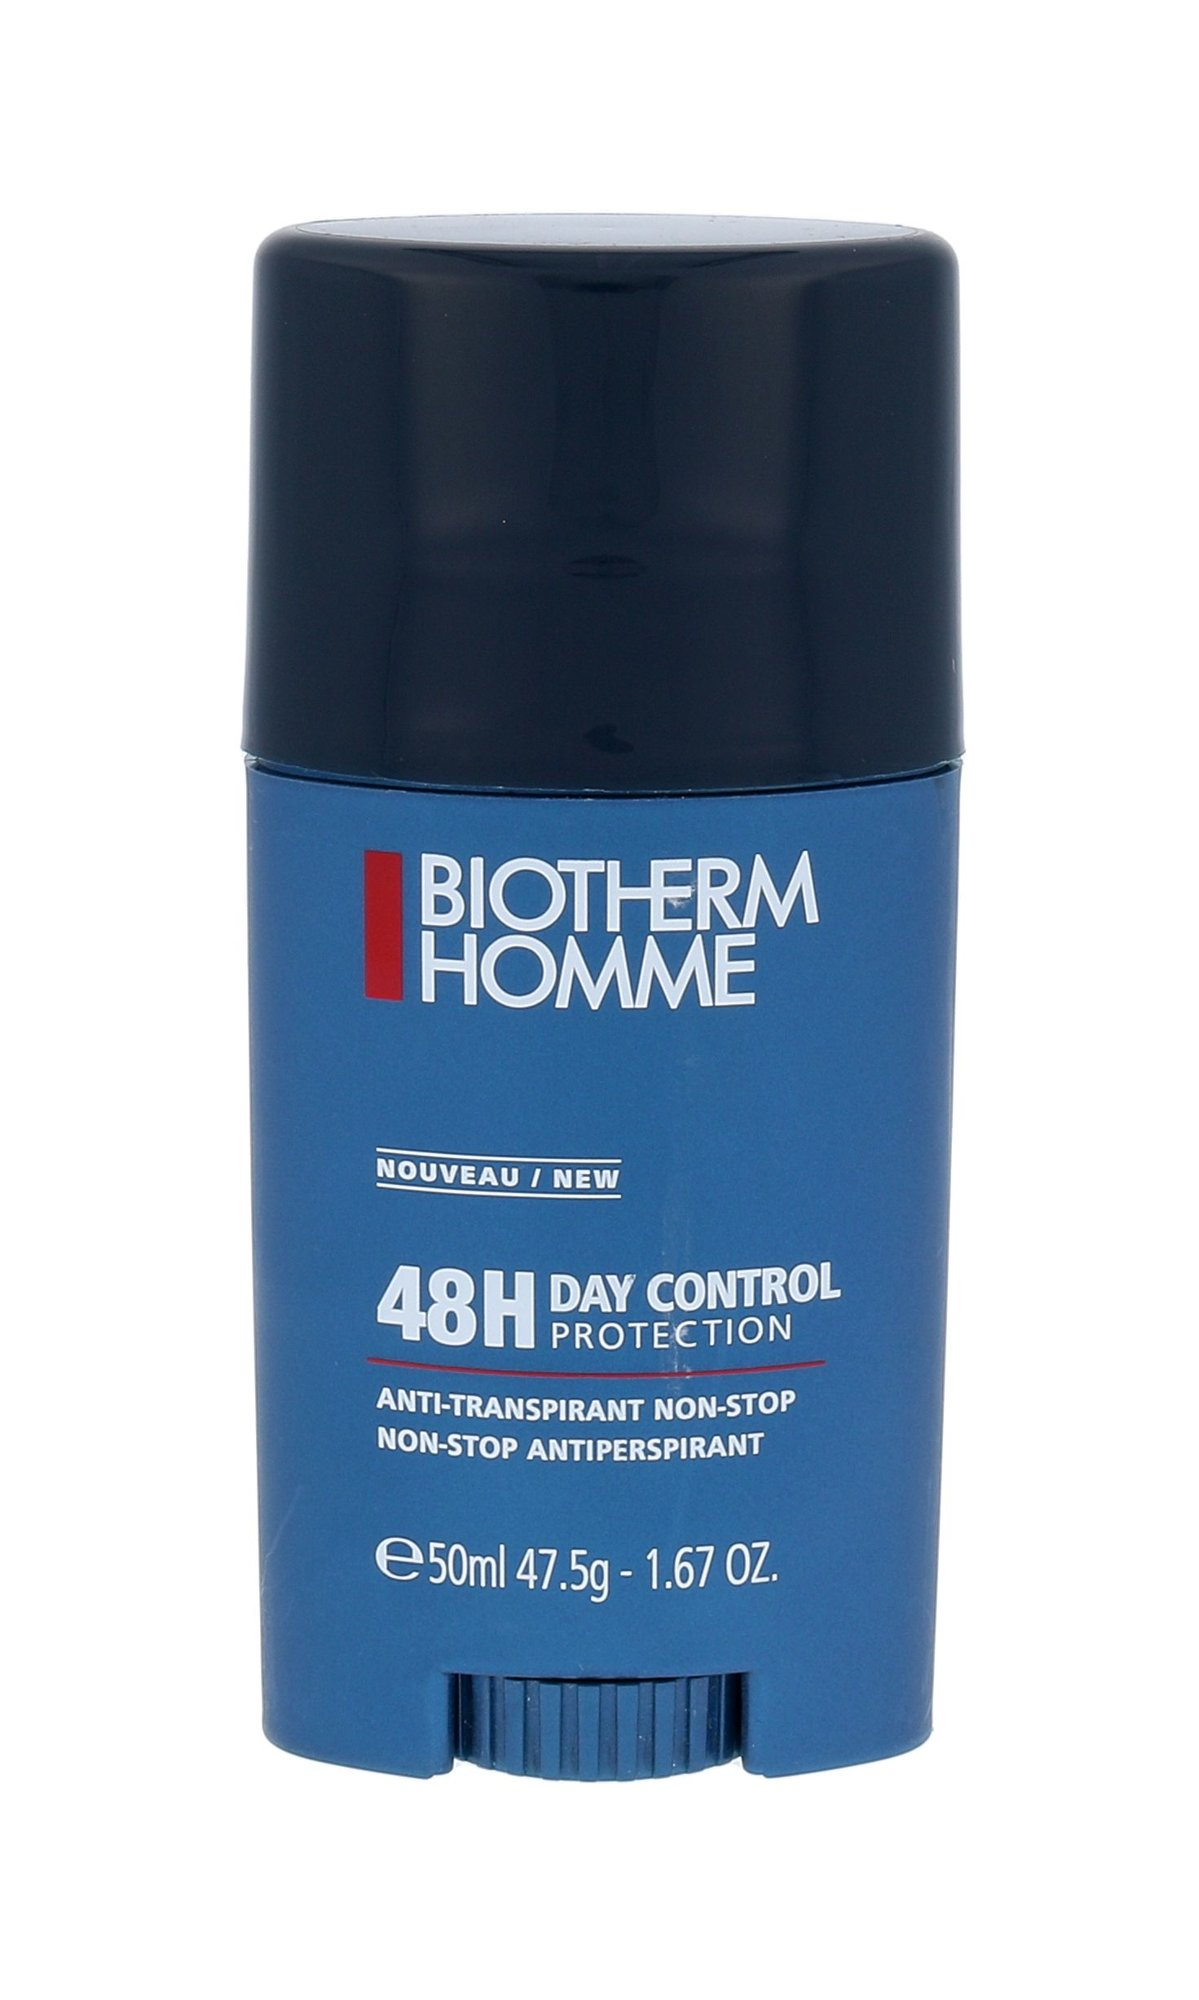 Biotherm Homme Day Control Cosmetic 50ml  48H